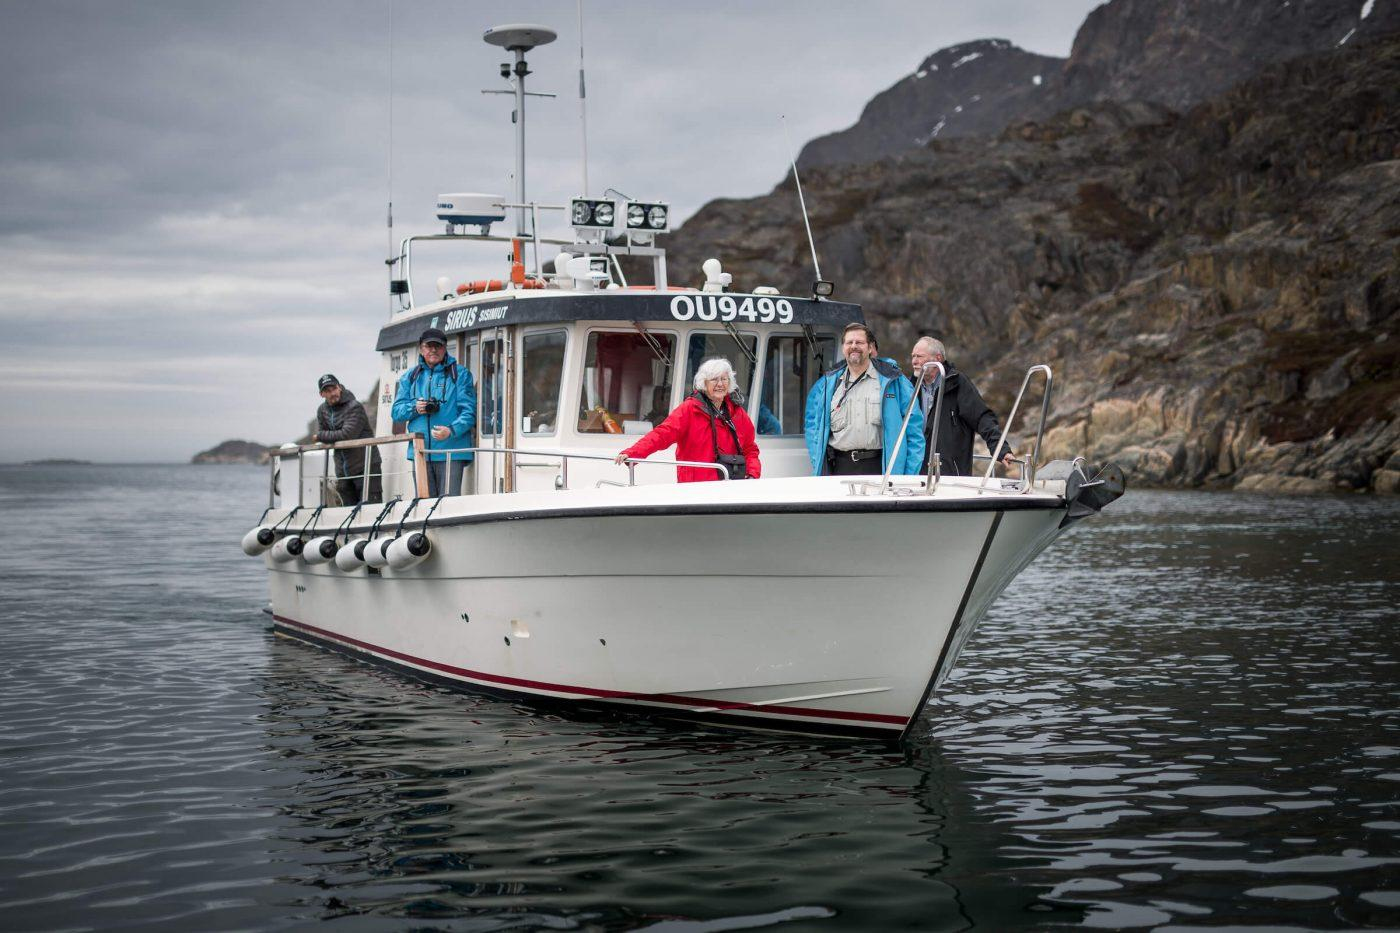 The tour boat Sirius Greenland arriving in Assaqutaq near Sisimiut in Greenland. Photo by Mads Pihl, Visit Greenland